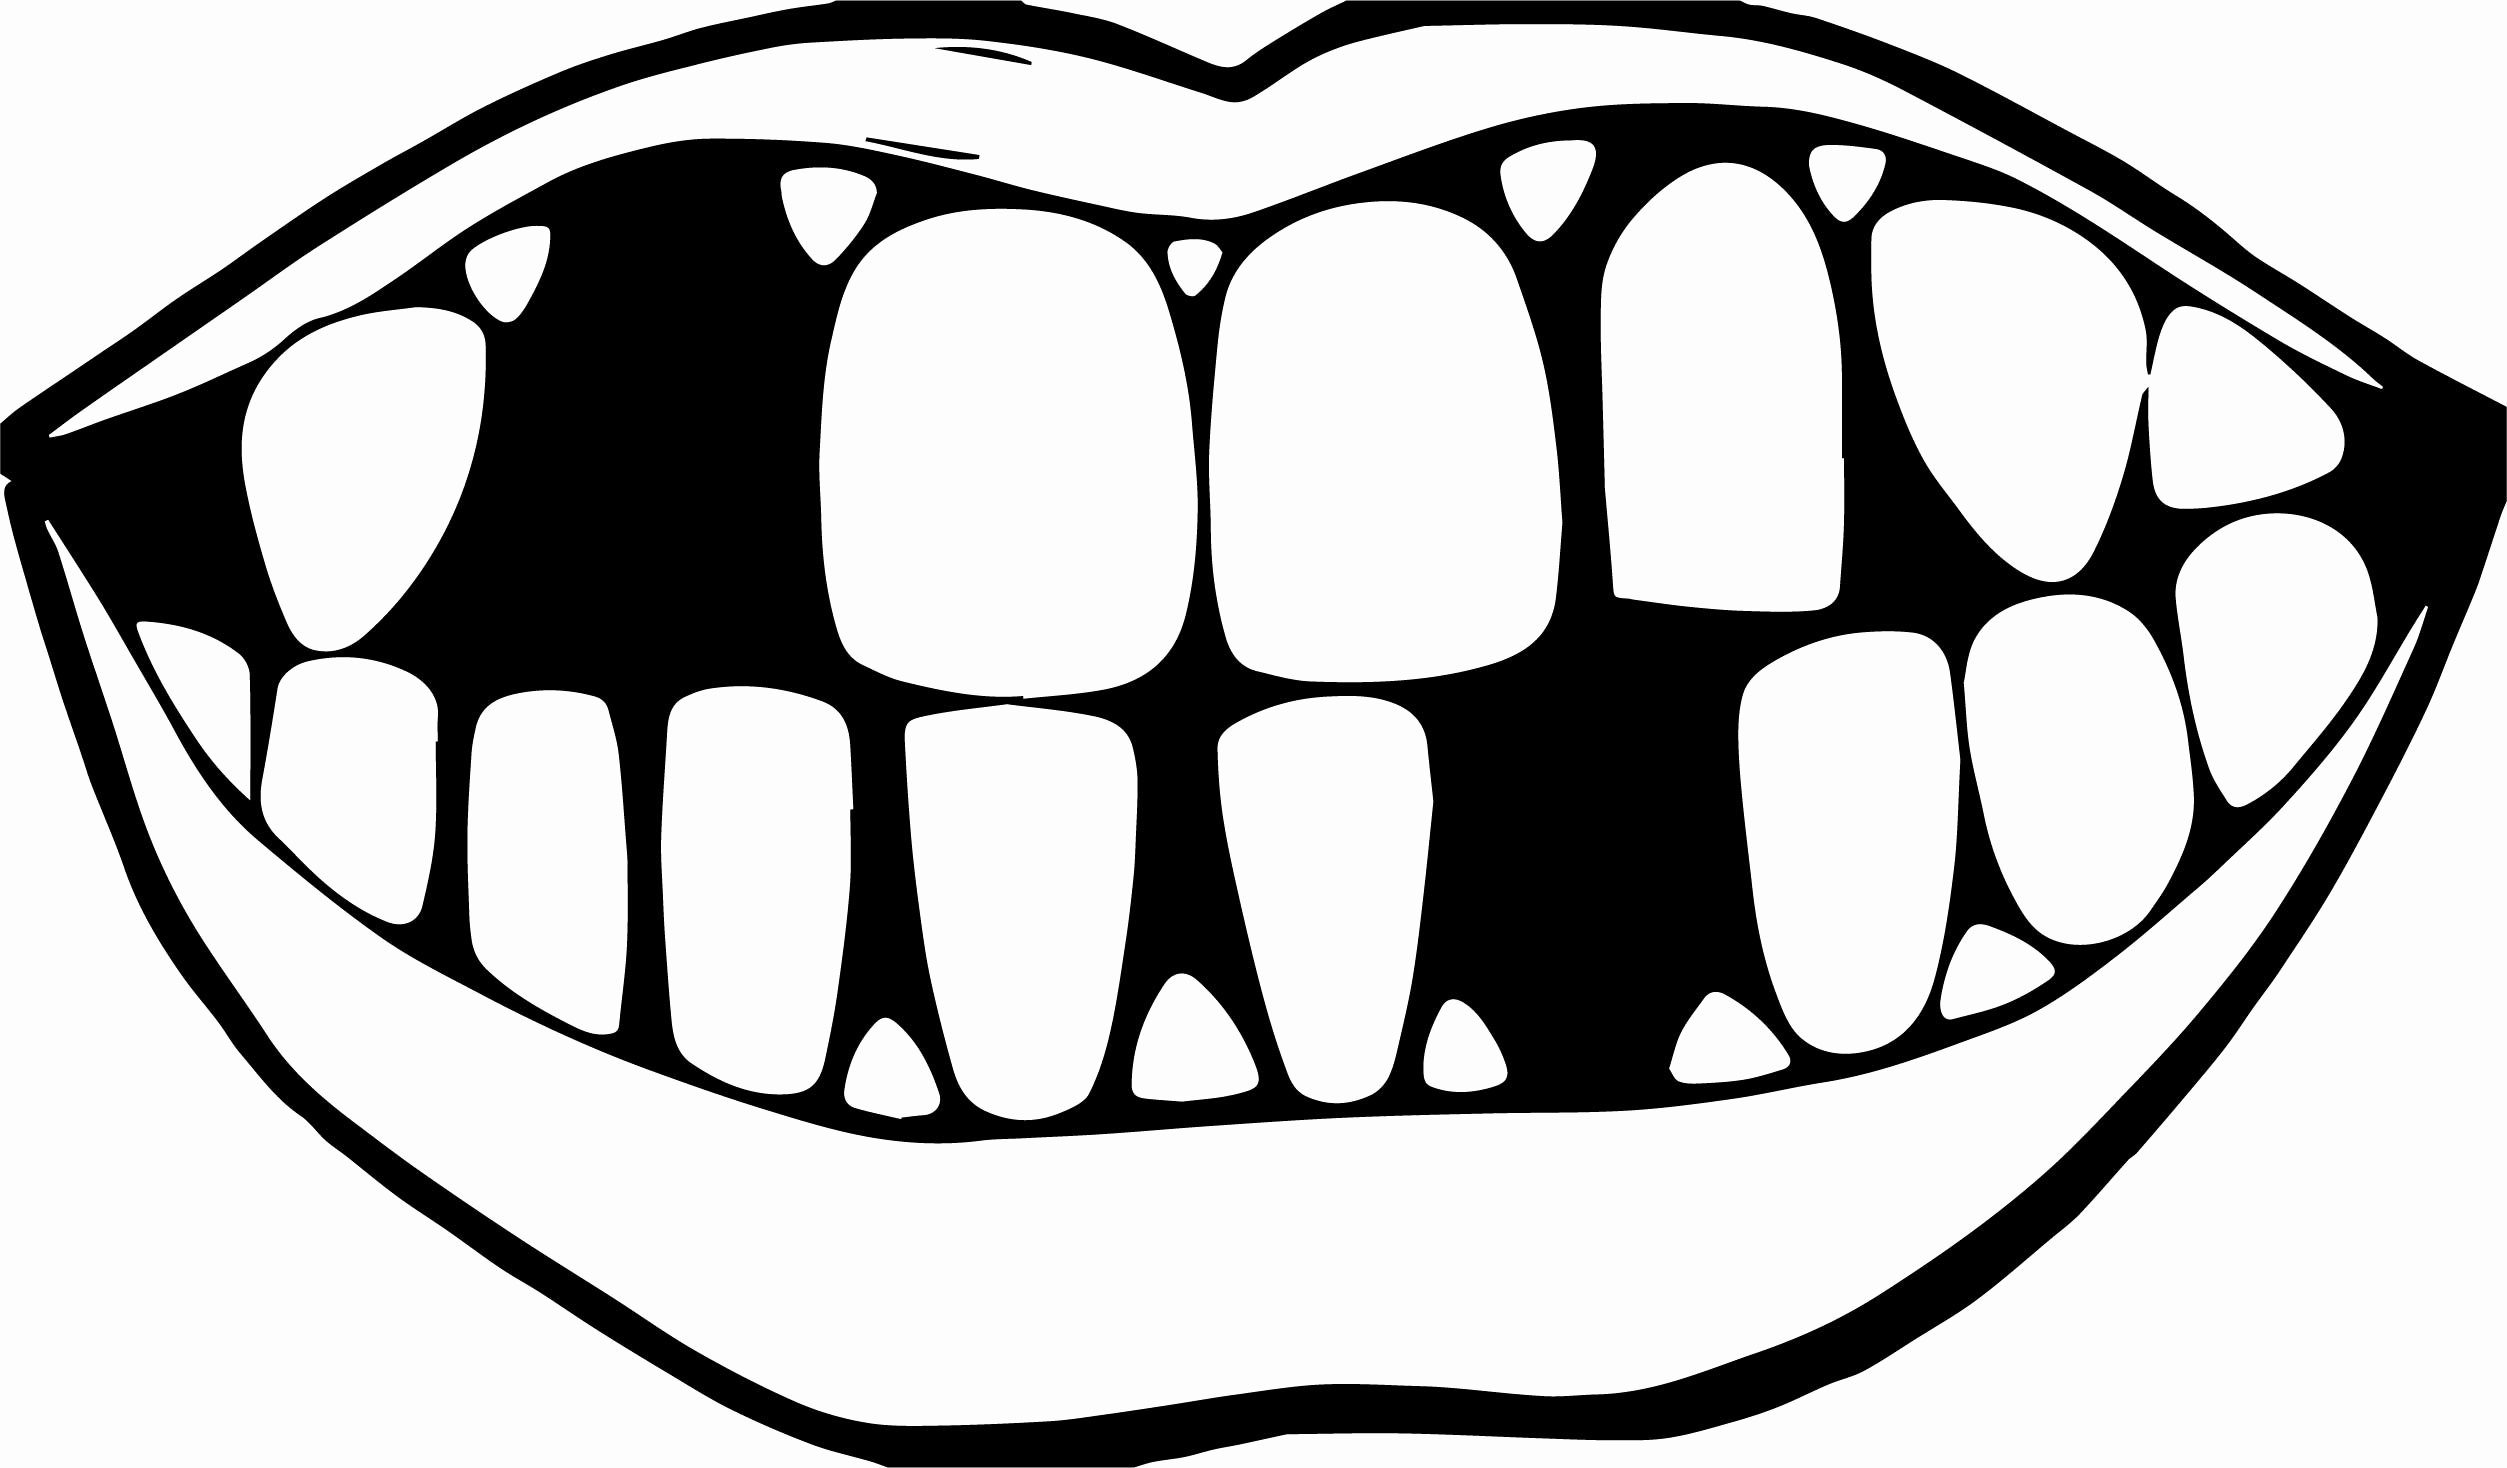 Teeth Coloring Pages Gallery 14e - Save it to your computer